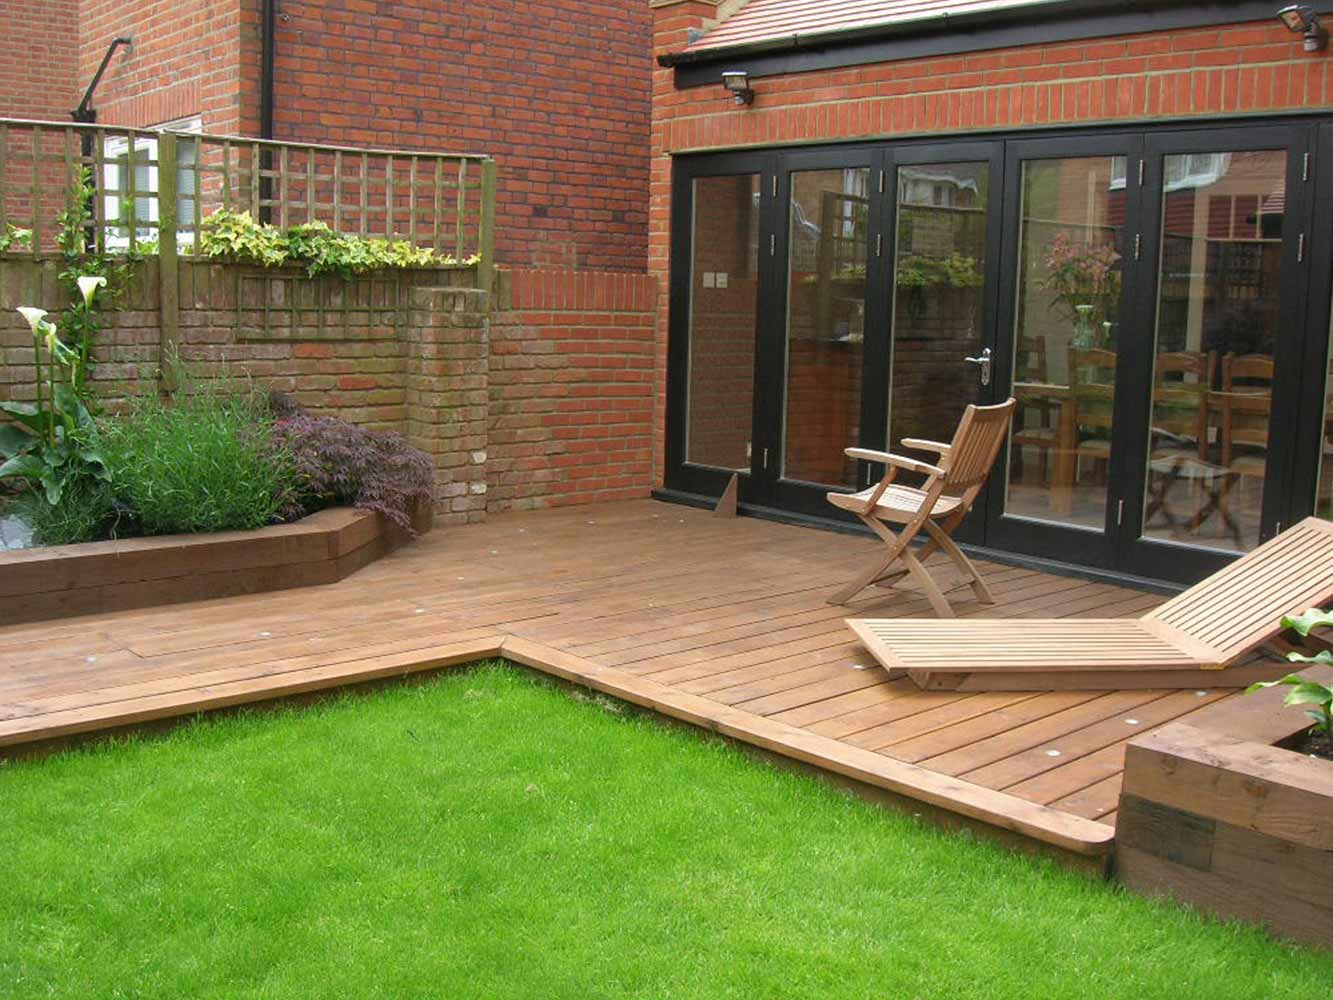 Izabela Garden Design – Garden and Landscaping service in London UK